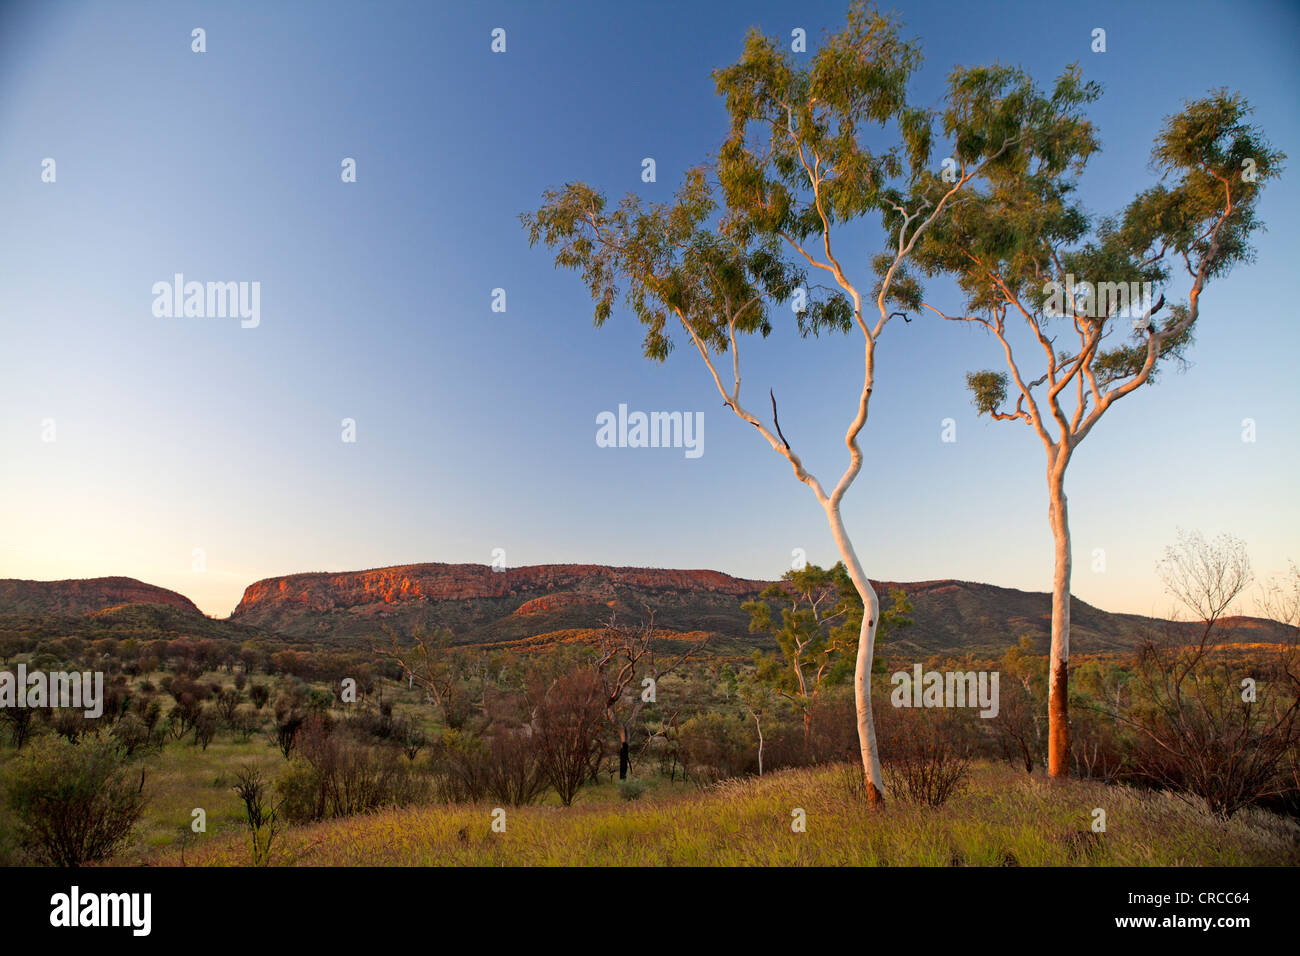 Ghost gums with a view to Simpsons Gap in the West MacDonnell Ranges - Stock Image